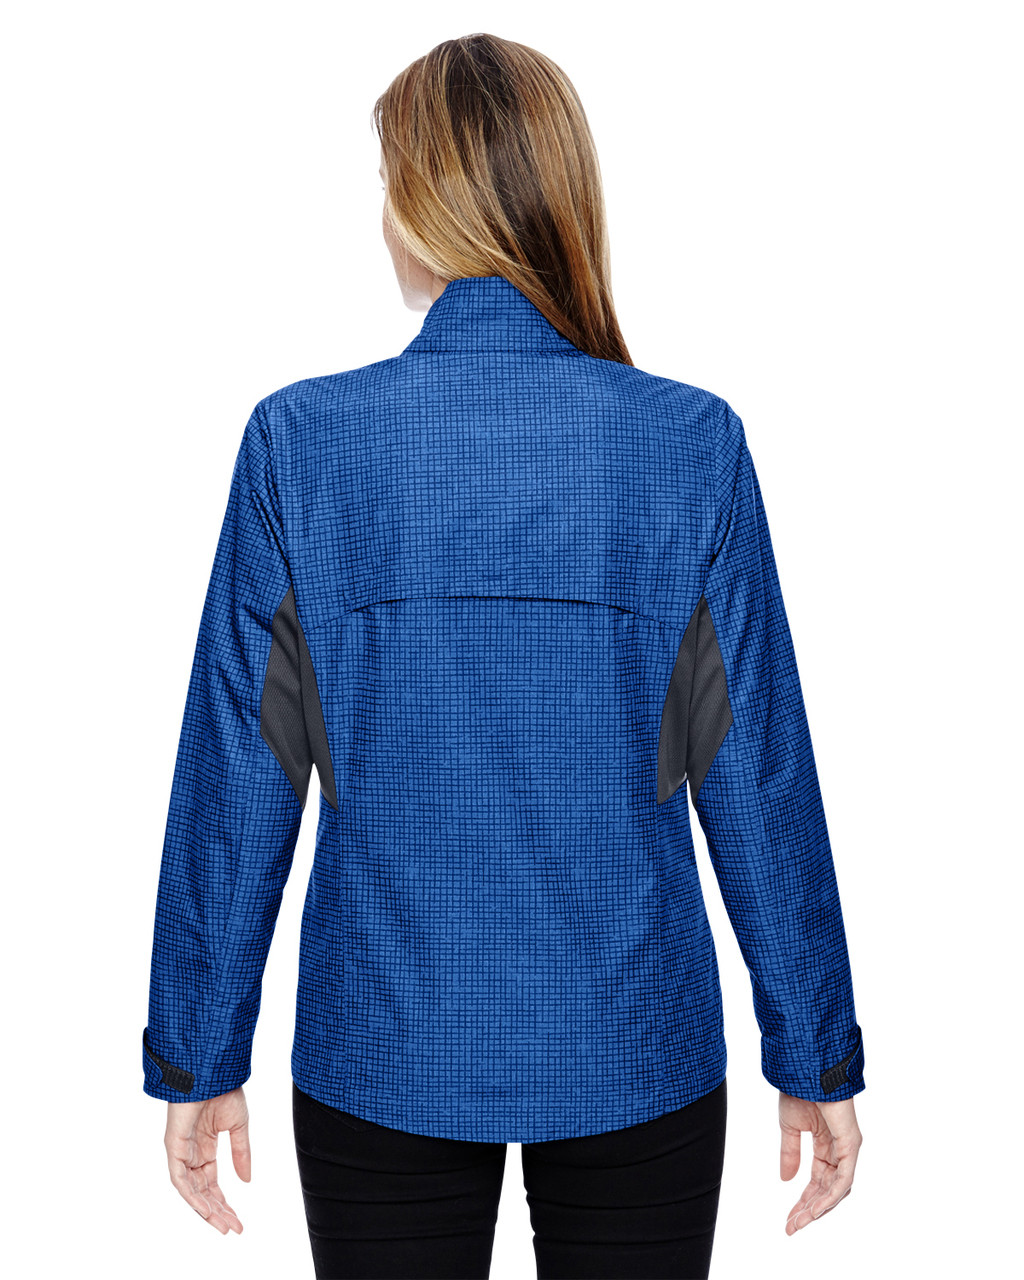 Nautical Blue-back 78805 North End Sport Red Interactive Sprint Printed Lightweight Jacket